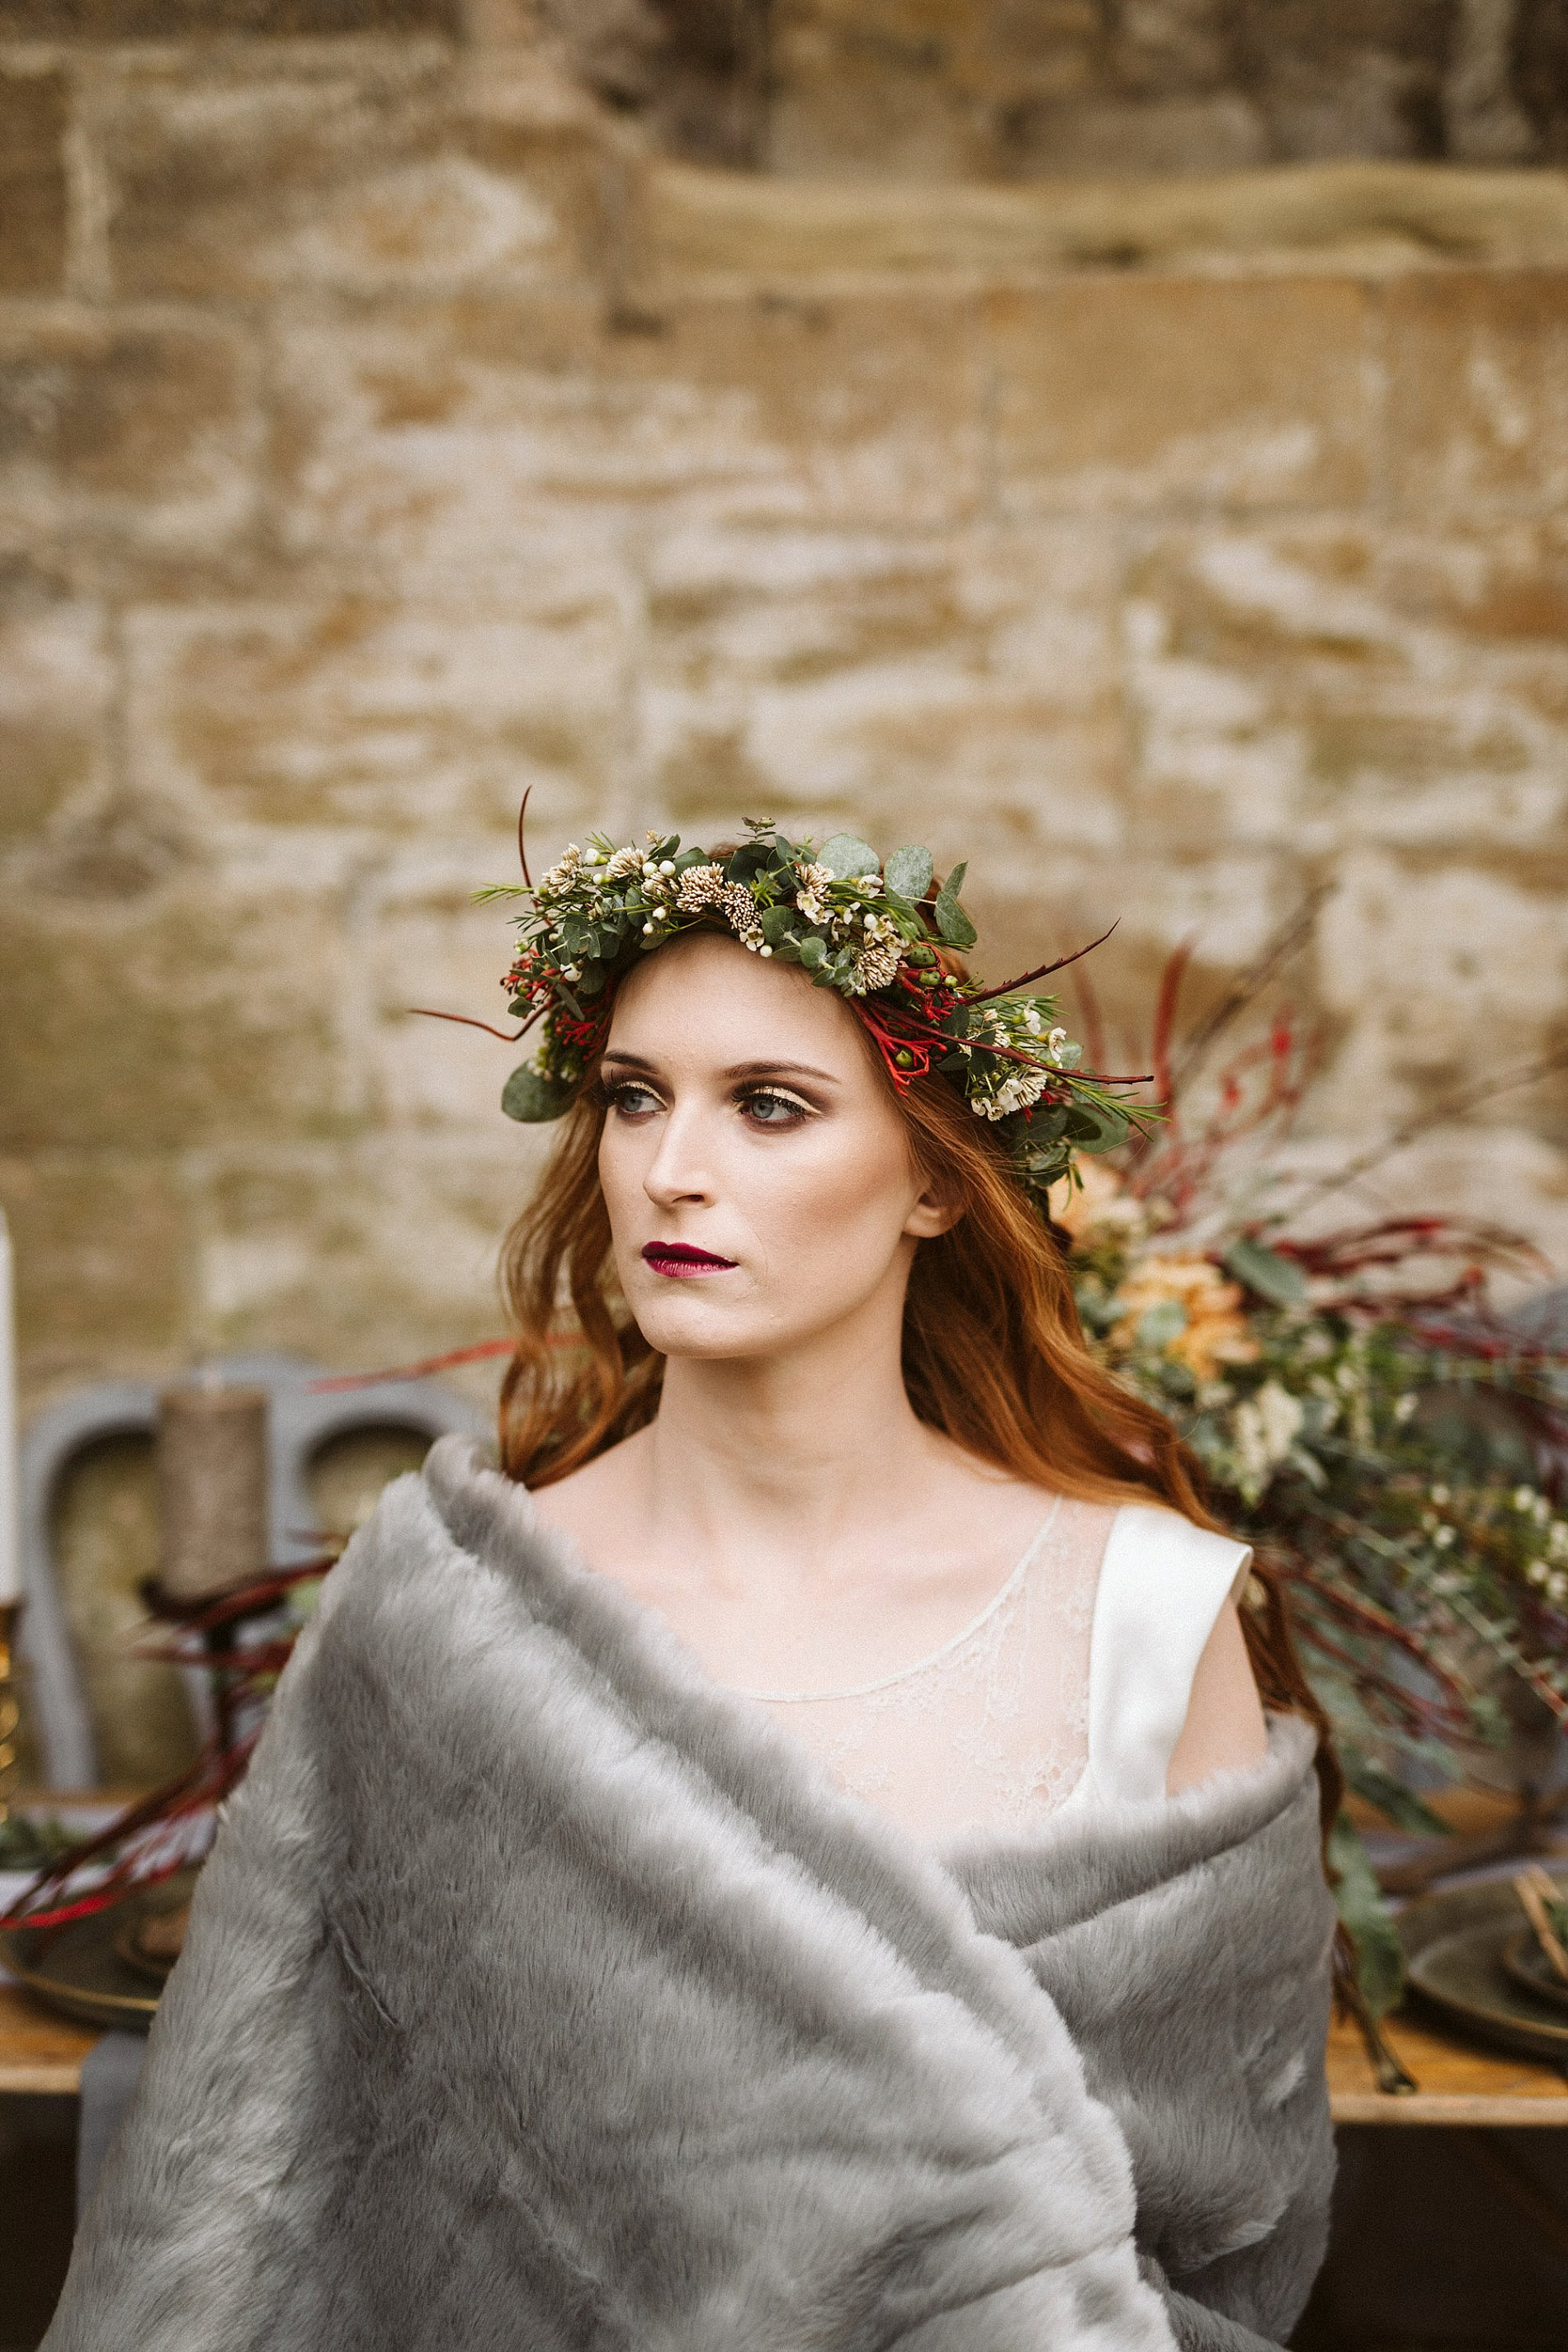 Game of Thrones Creative Bridal Shoot (c) Freya Raby (21)